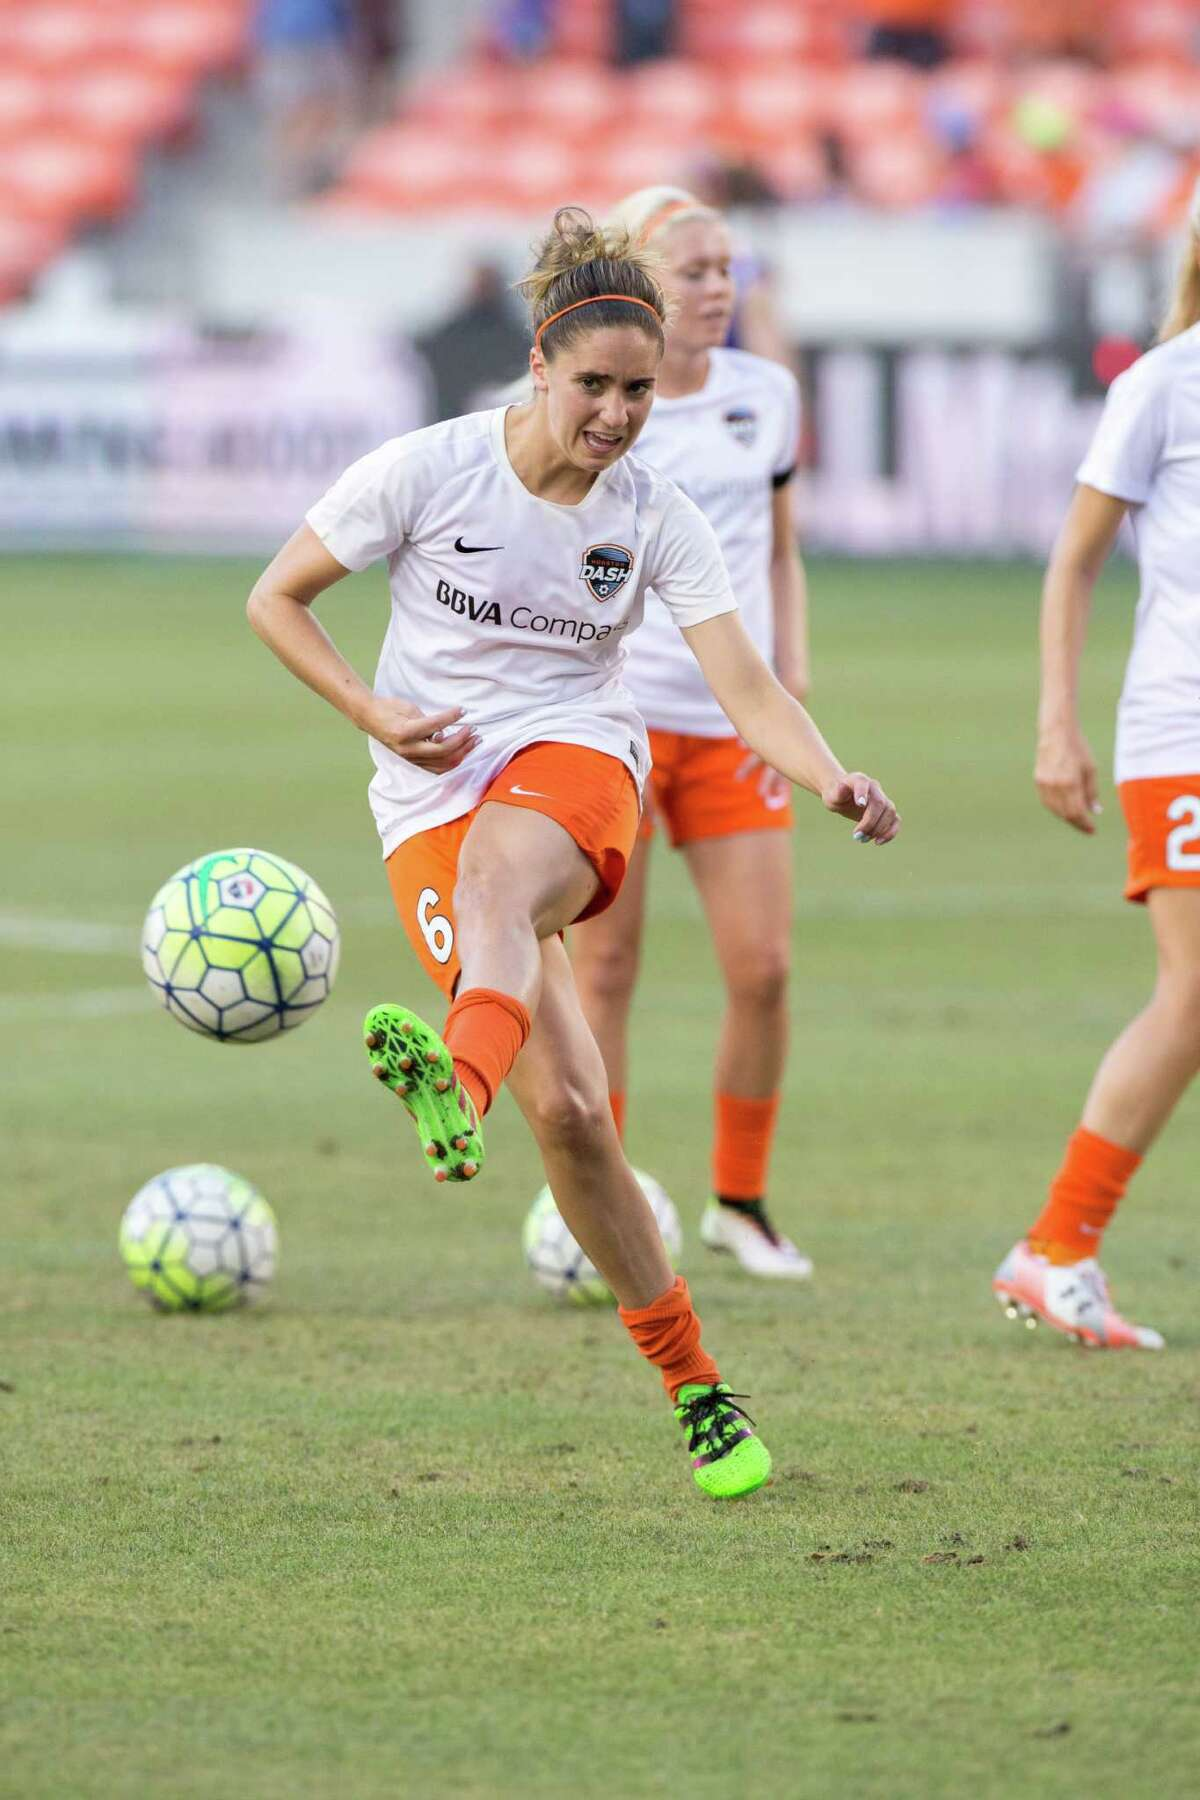 Houston Dash midfielder Morgan Brian (6) warms up on the field against the FC Kansas City before action between the Houston Dash and the FC Kansas City during a soccer game at BBVA Compass, Sunday, June 19, 2016, in Houston. FC Kansas City defeated Houston Dash 1-0. ( Juan DeLeon / for the Houston Chronicle )